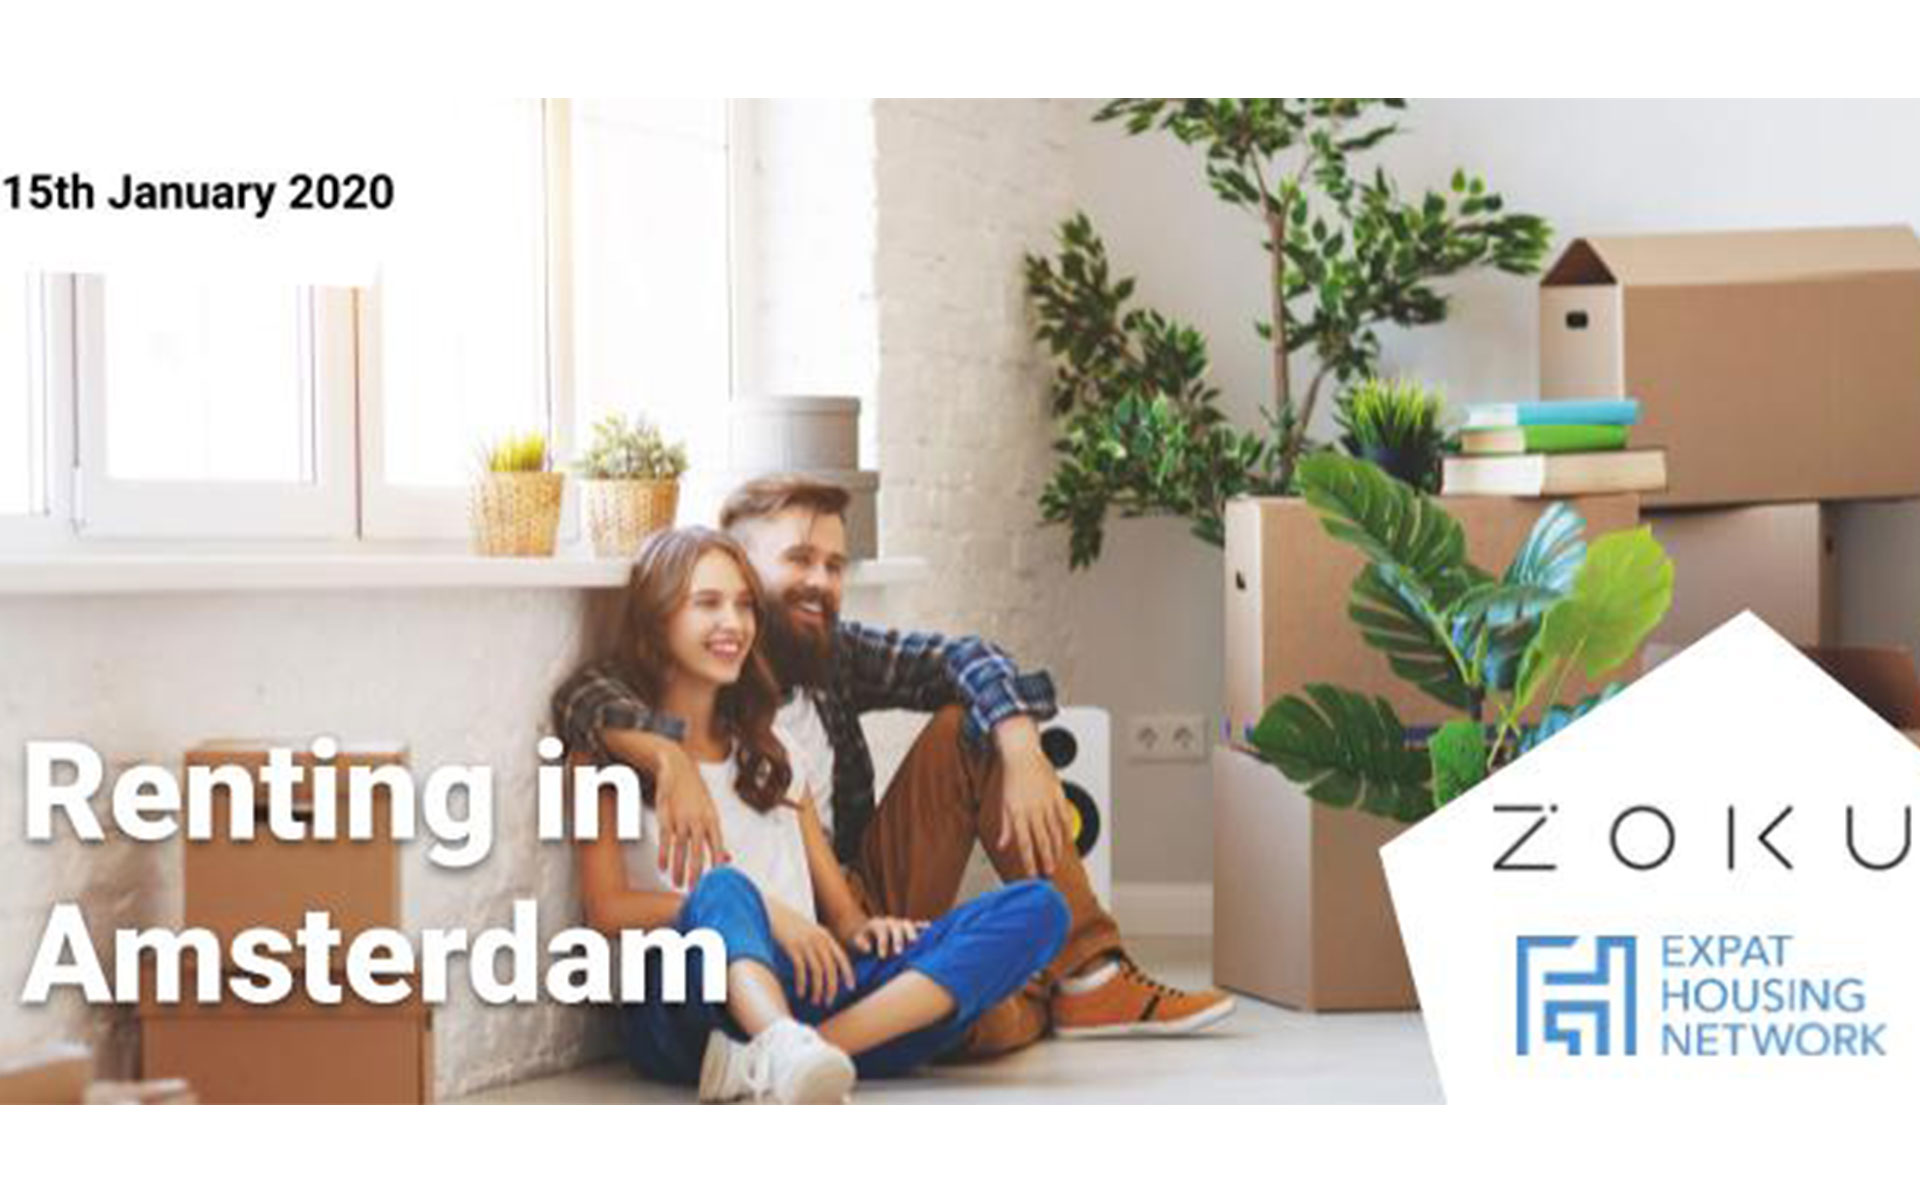 Renting in Amsterdam - 15 January 2020